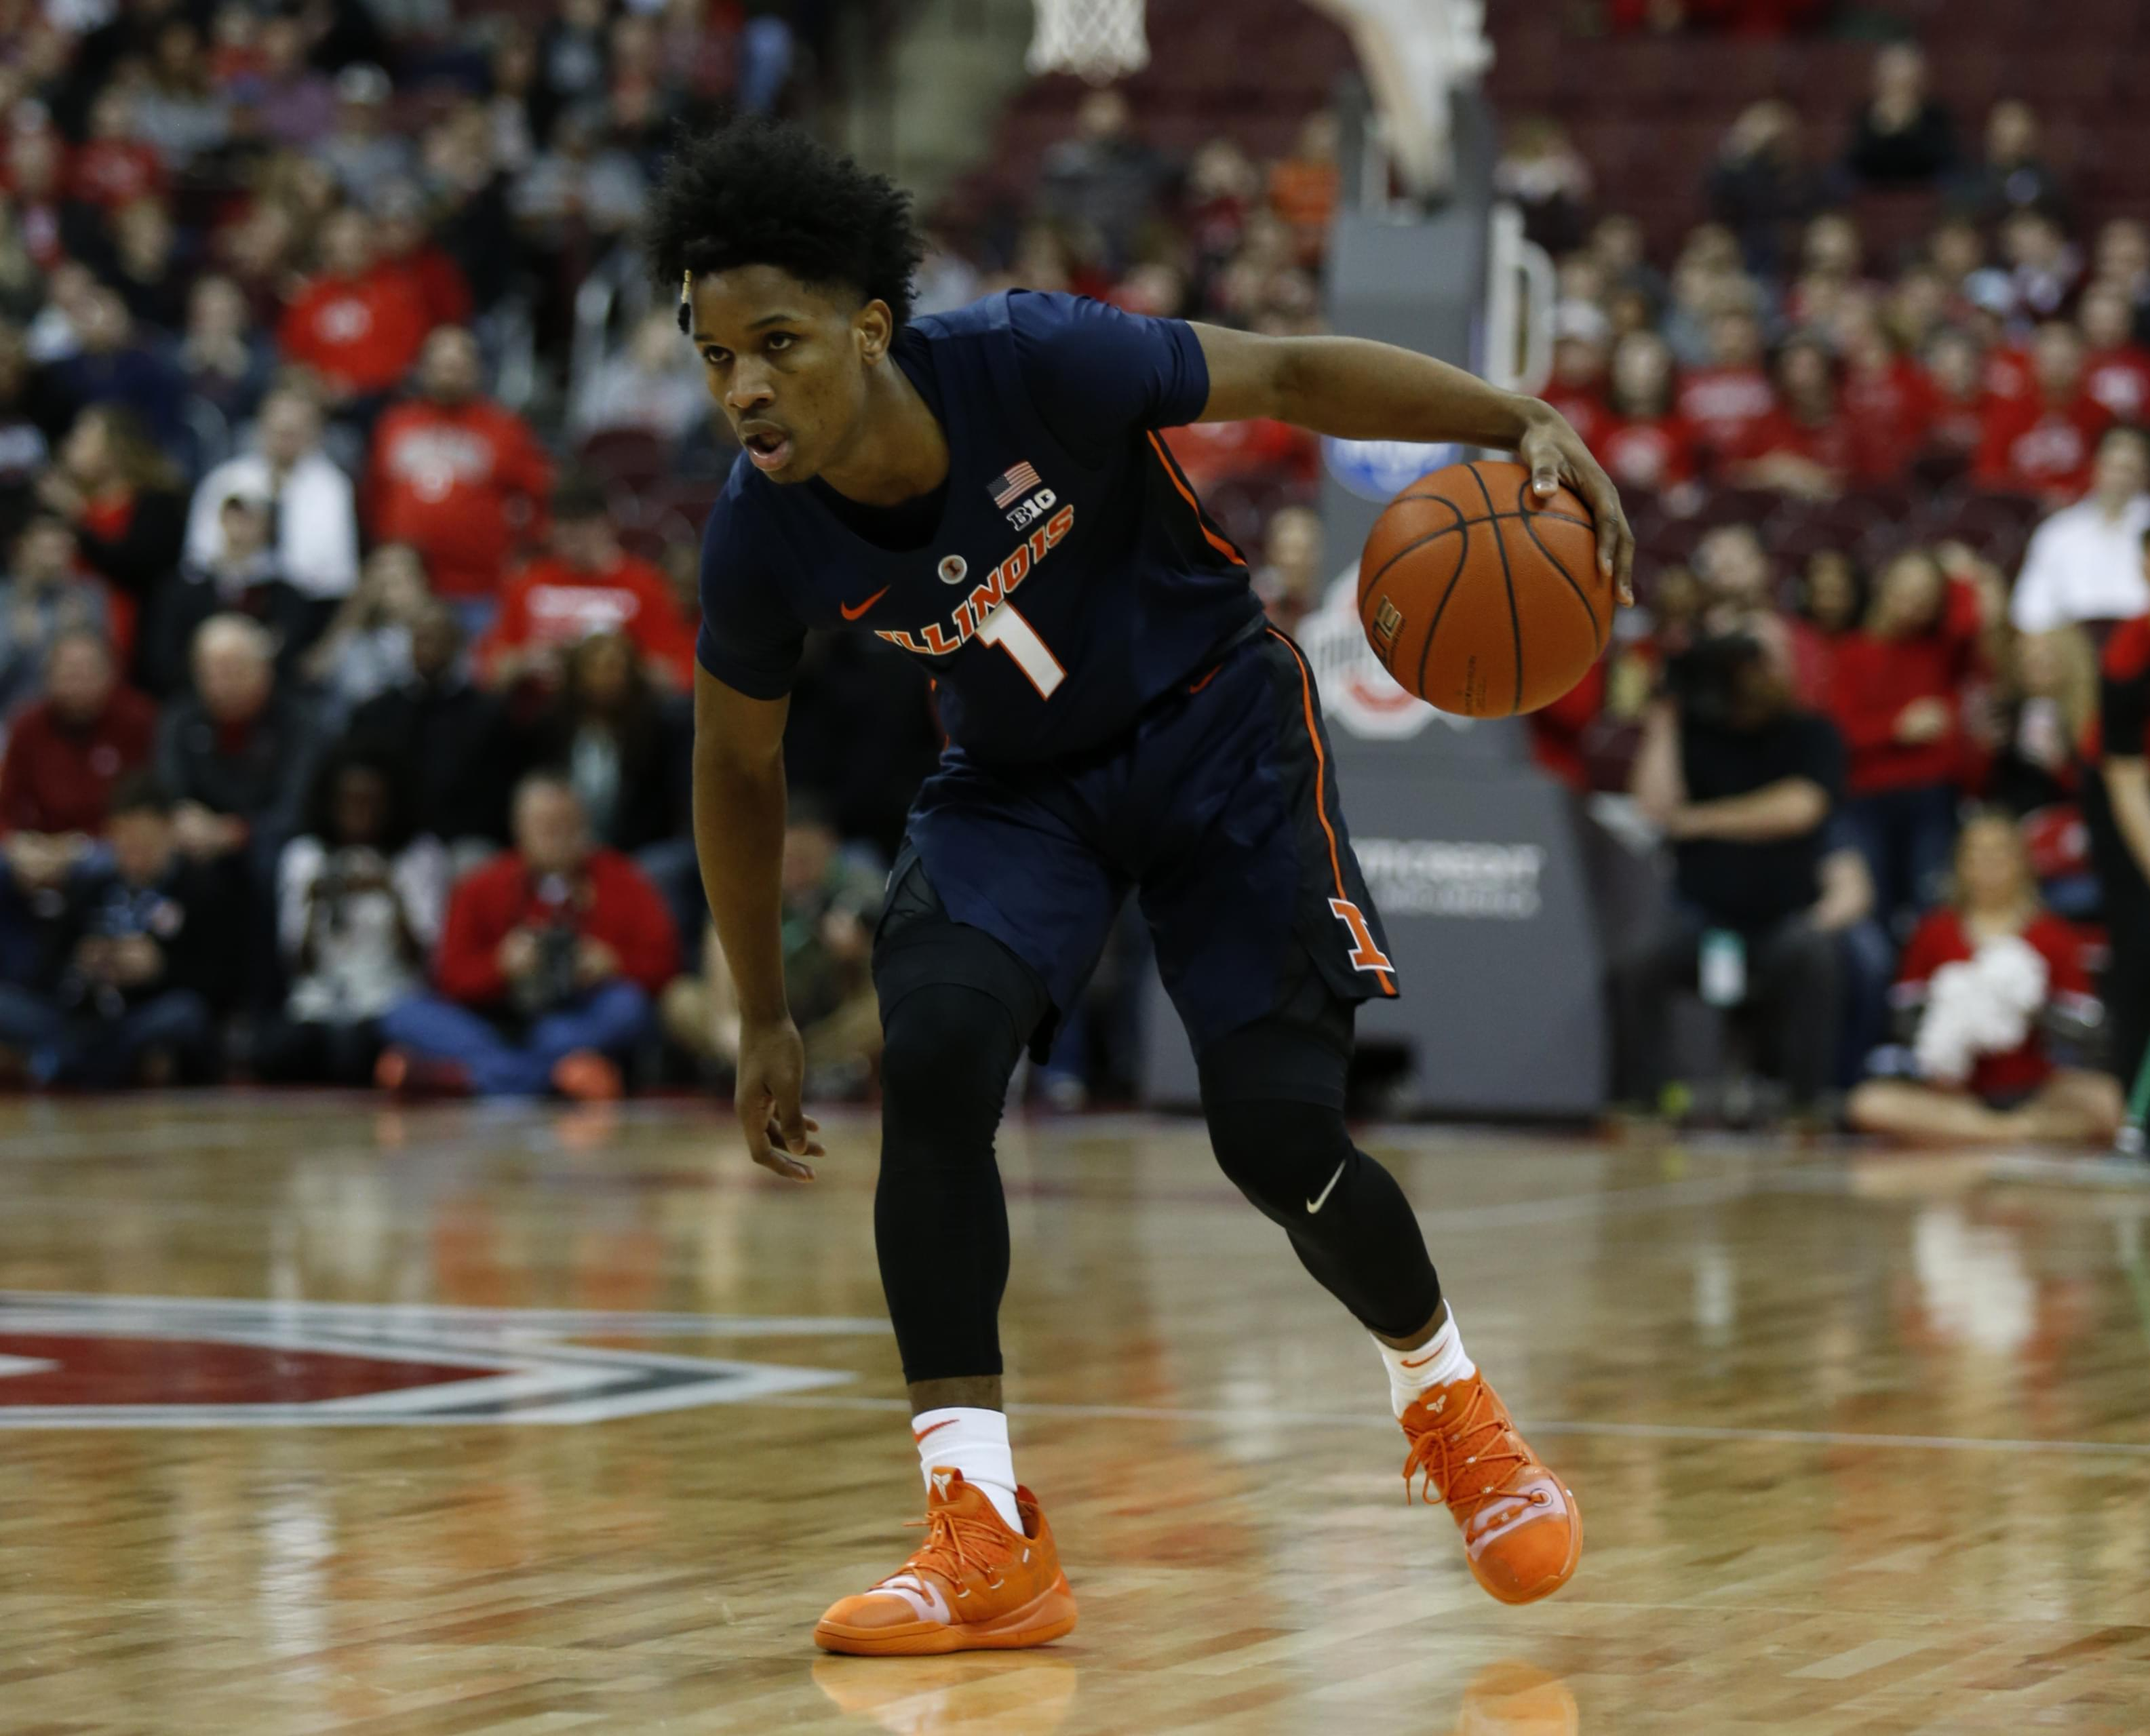 Illinois guard Trent Frazier drives against Ohio State during an NCAA college basketball game in Columbus, Ohio, Thursday, Feb. 14, 2019. Illinois won 63-56.